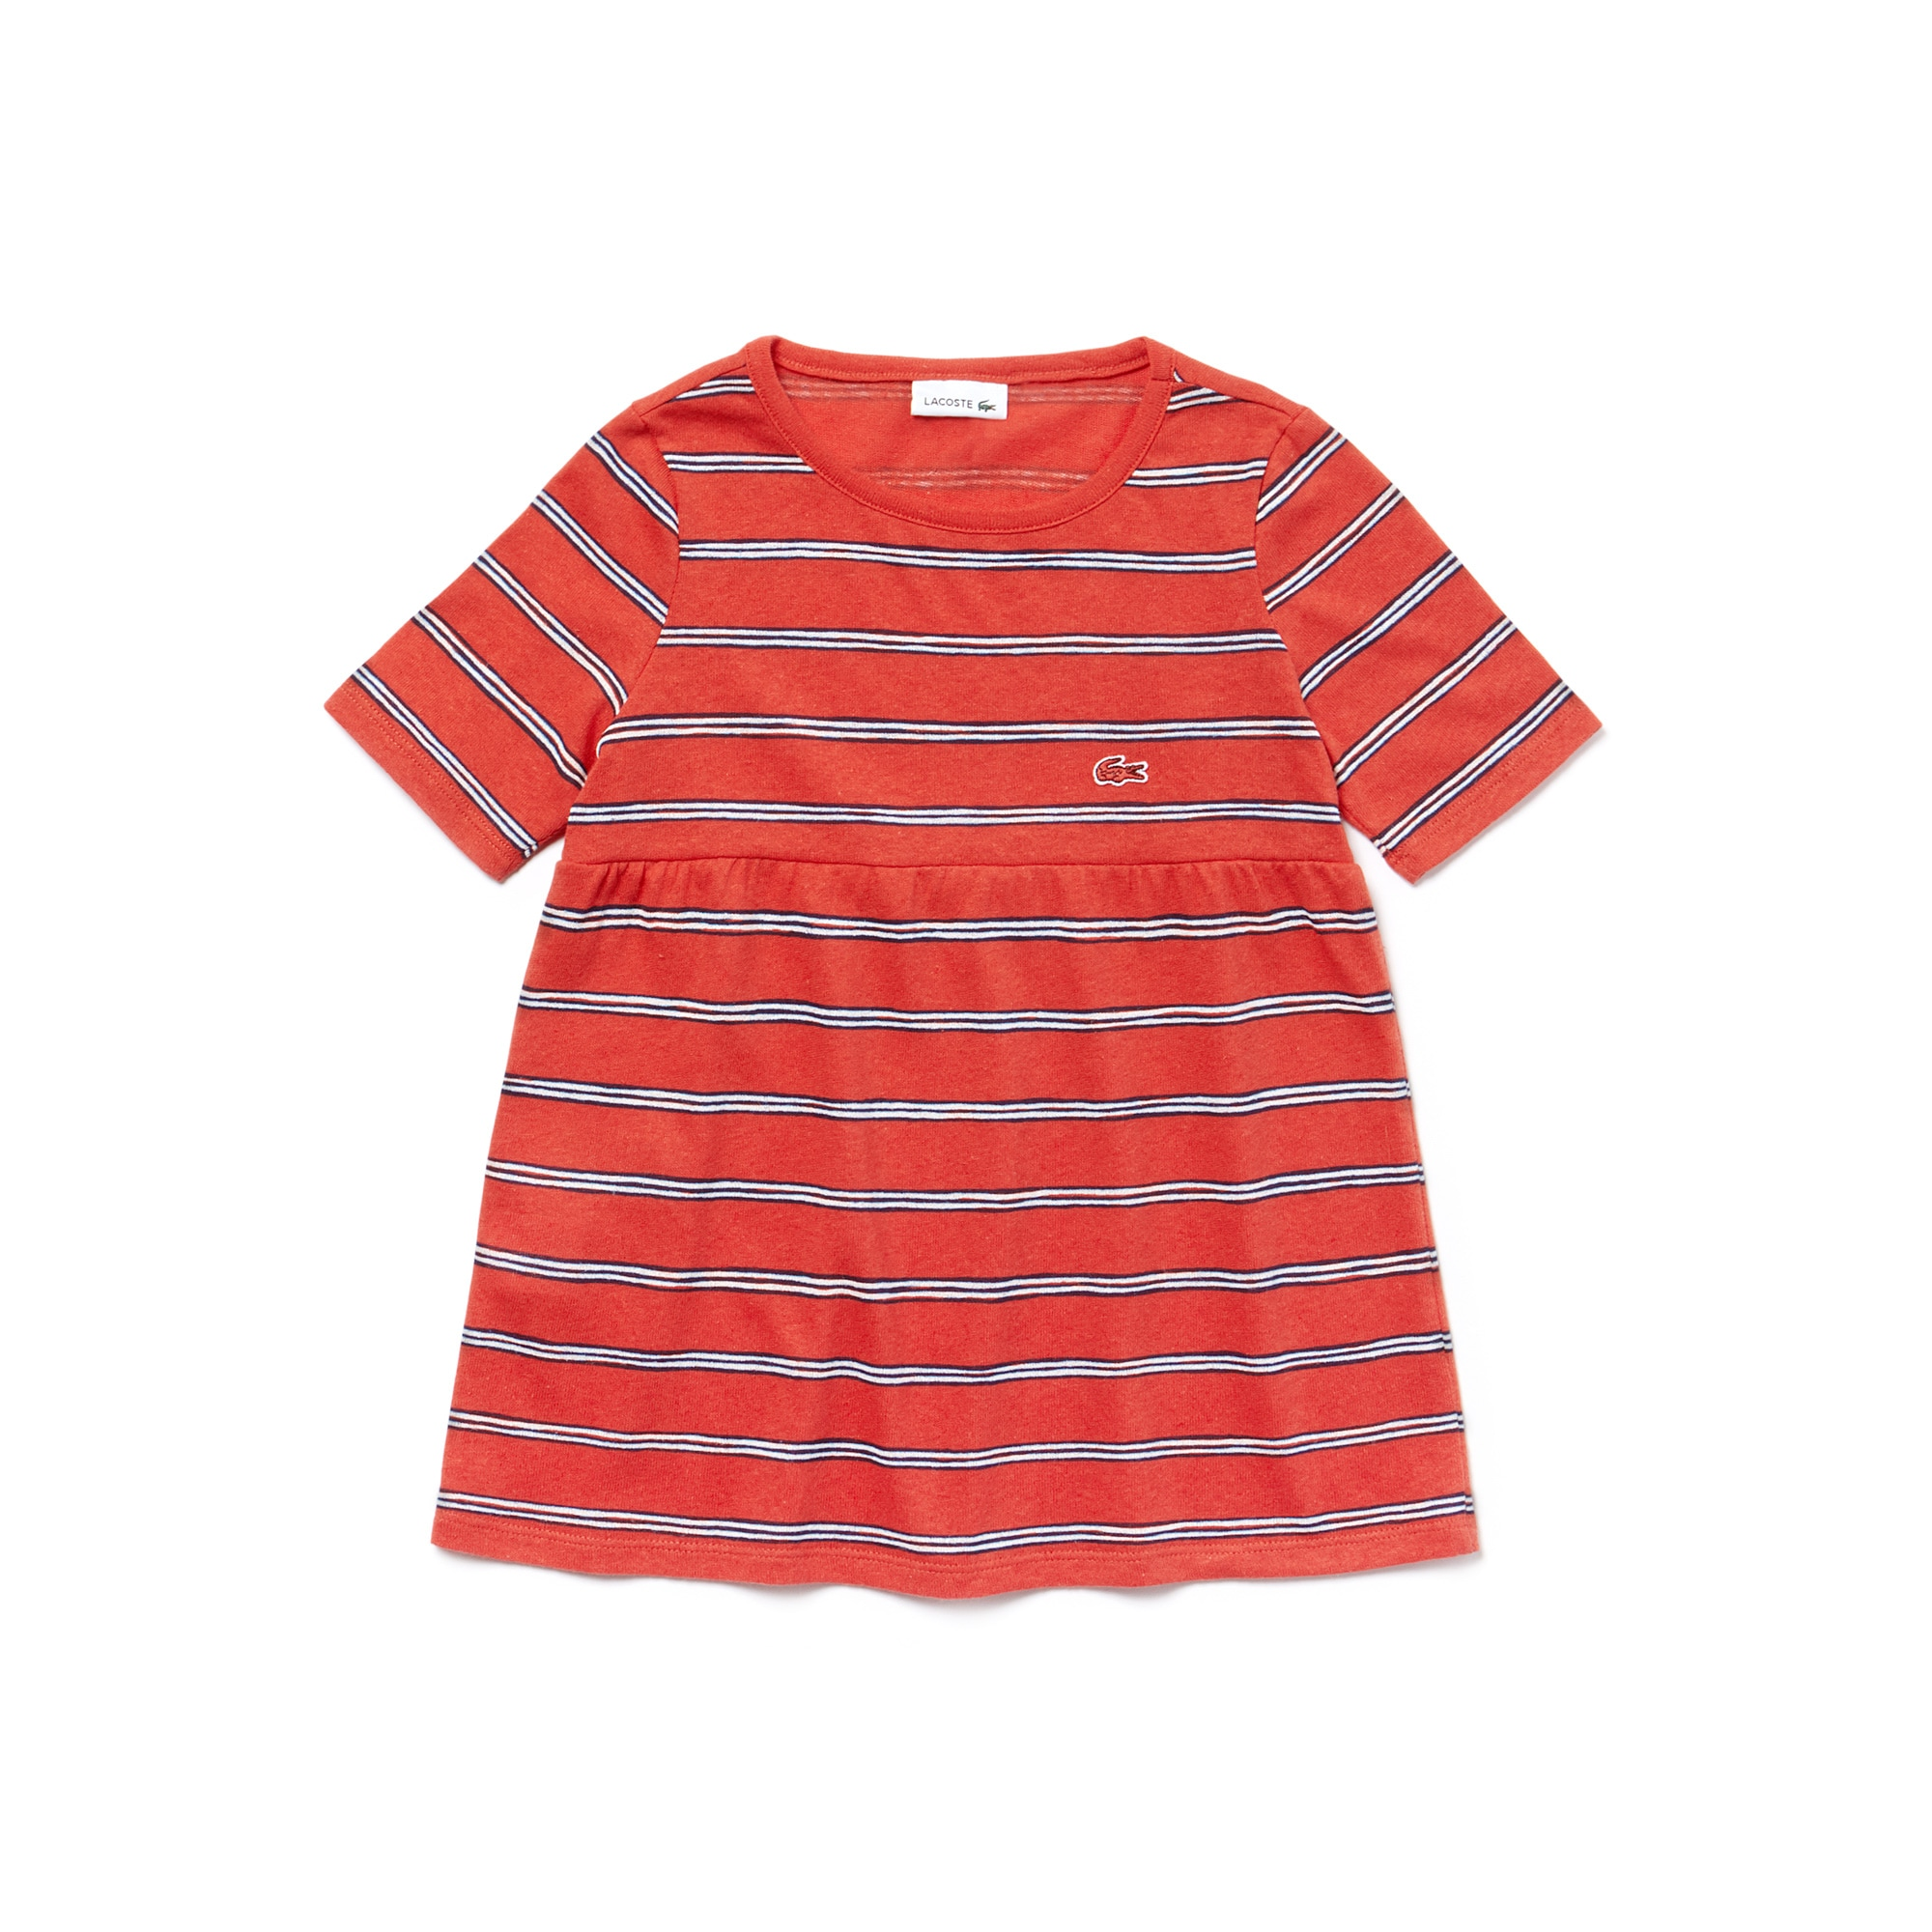 Girls' Striped Cotton And Linen T-Shirt